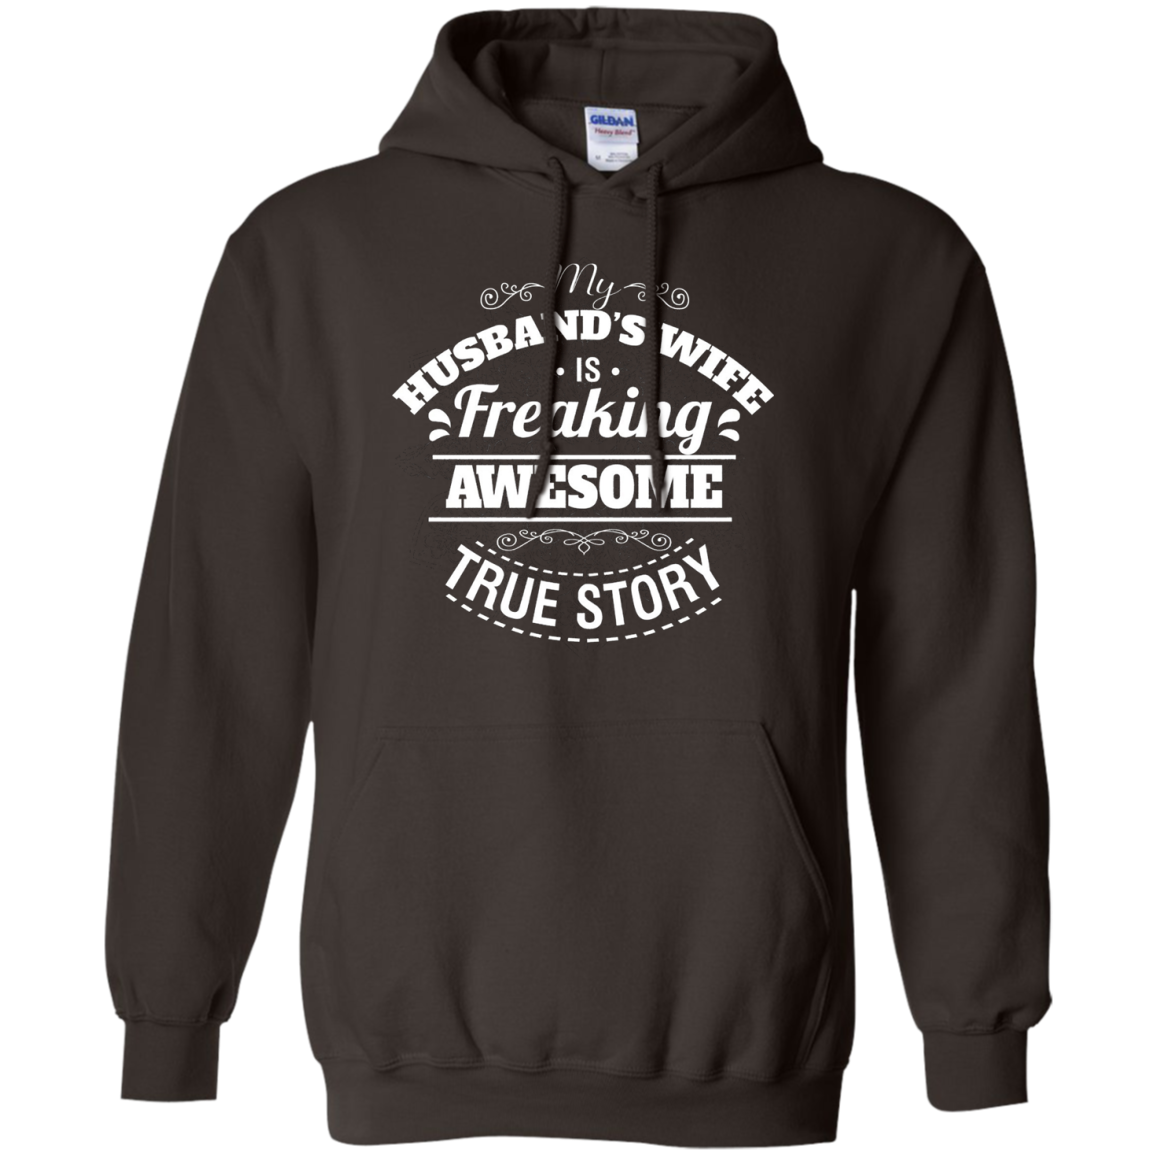 My Husband's Wife Is Freaking AWESOME - True Story Shirt